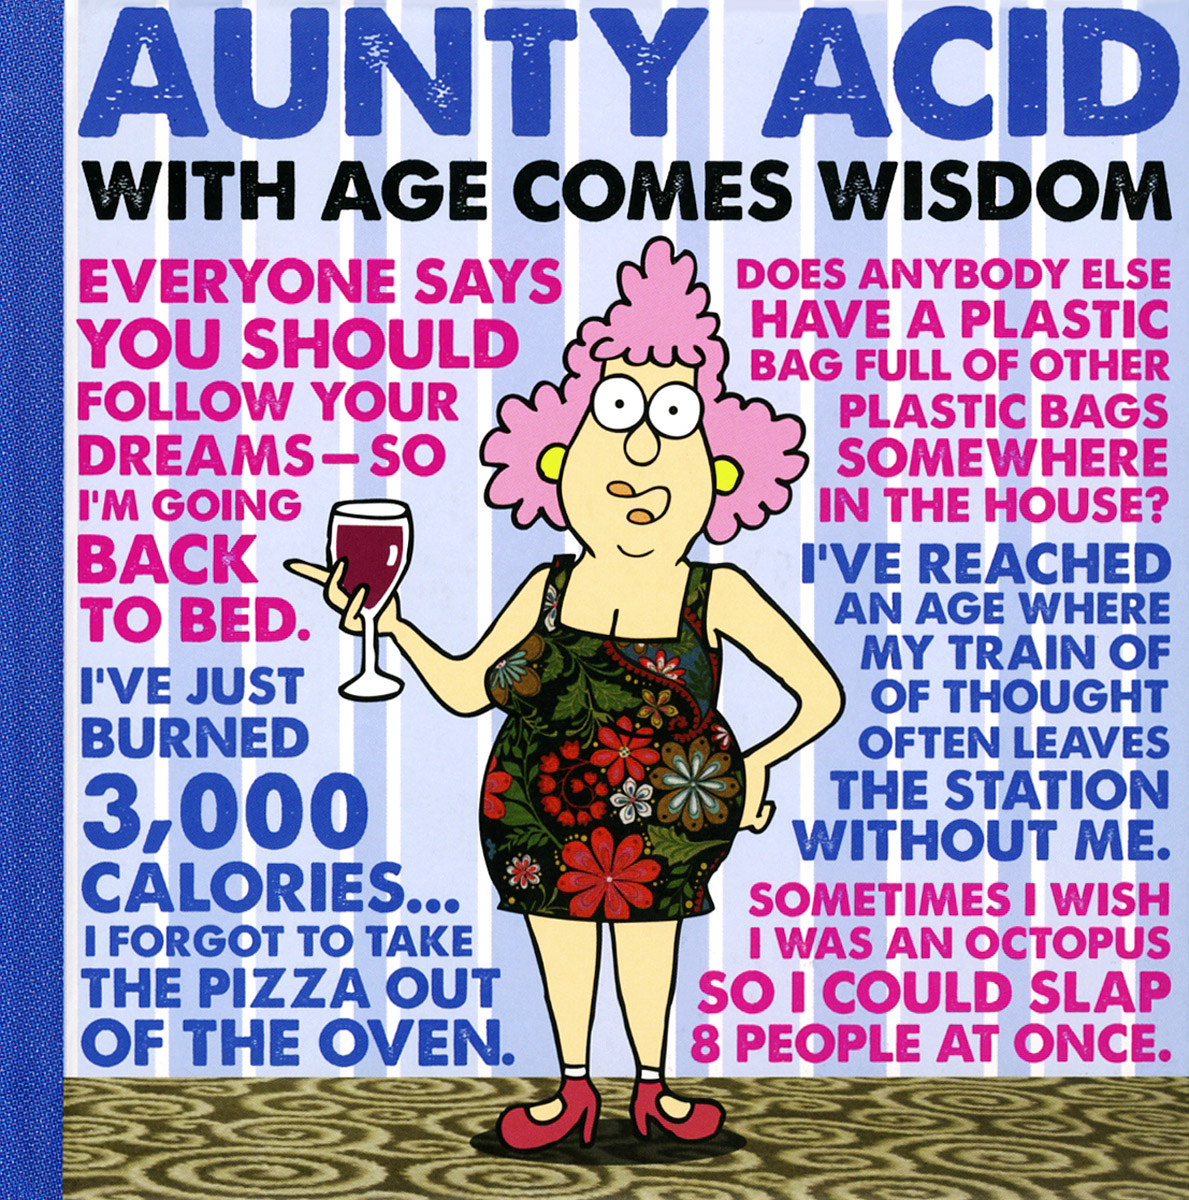 Aunty Acid: With Age Comes Wisdom the second media age